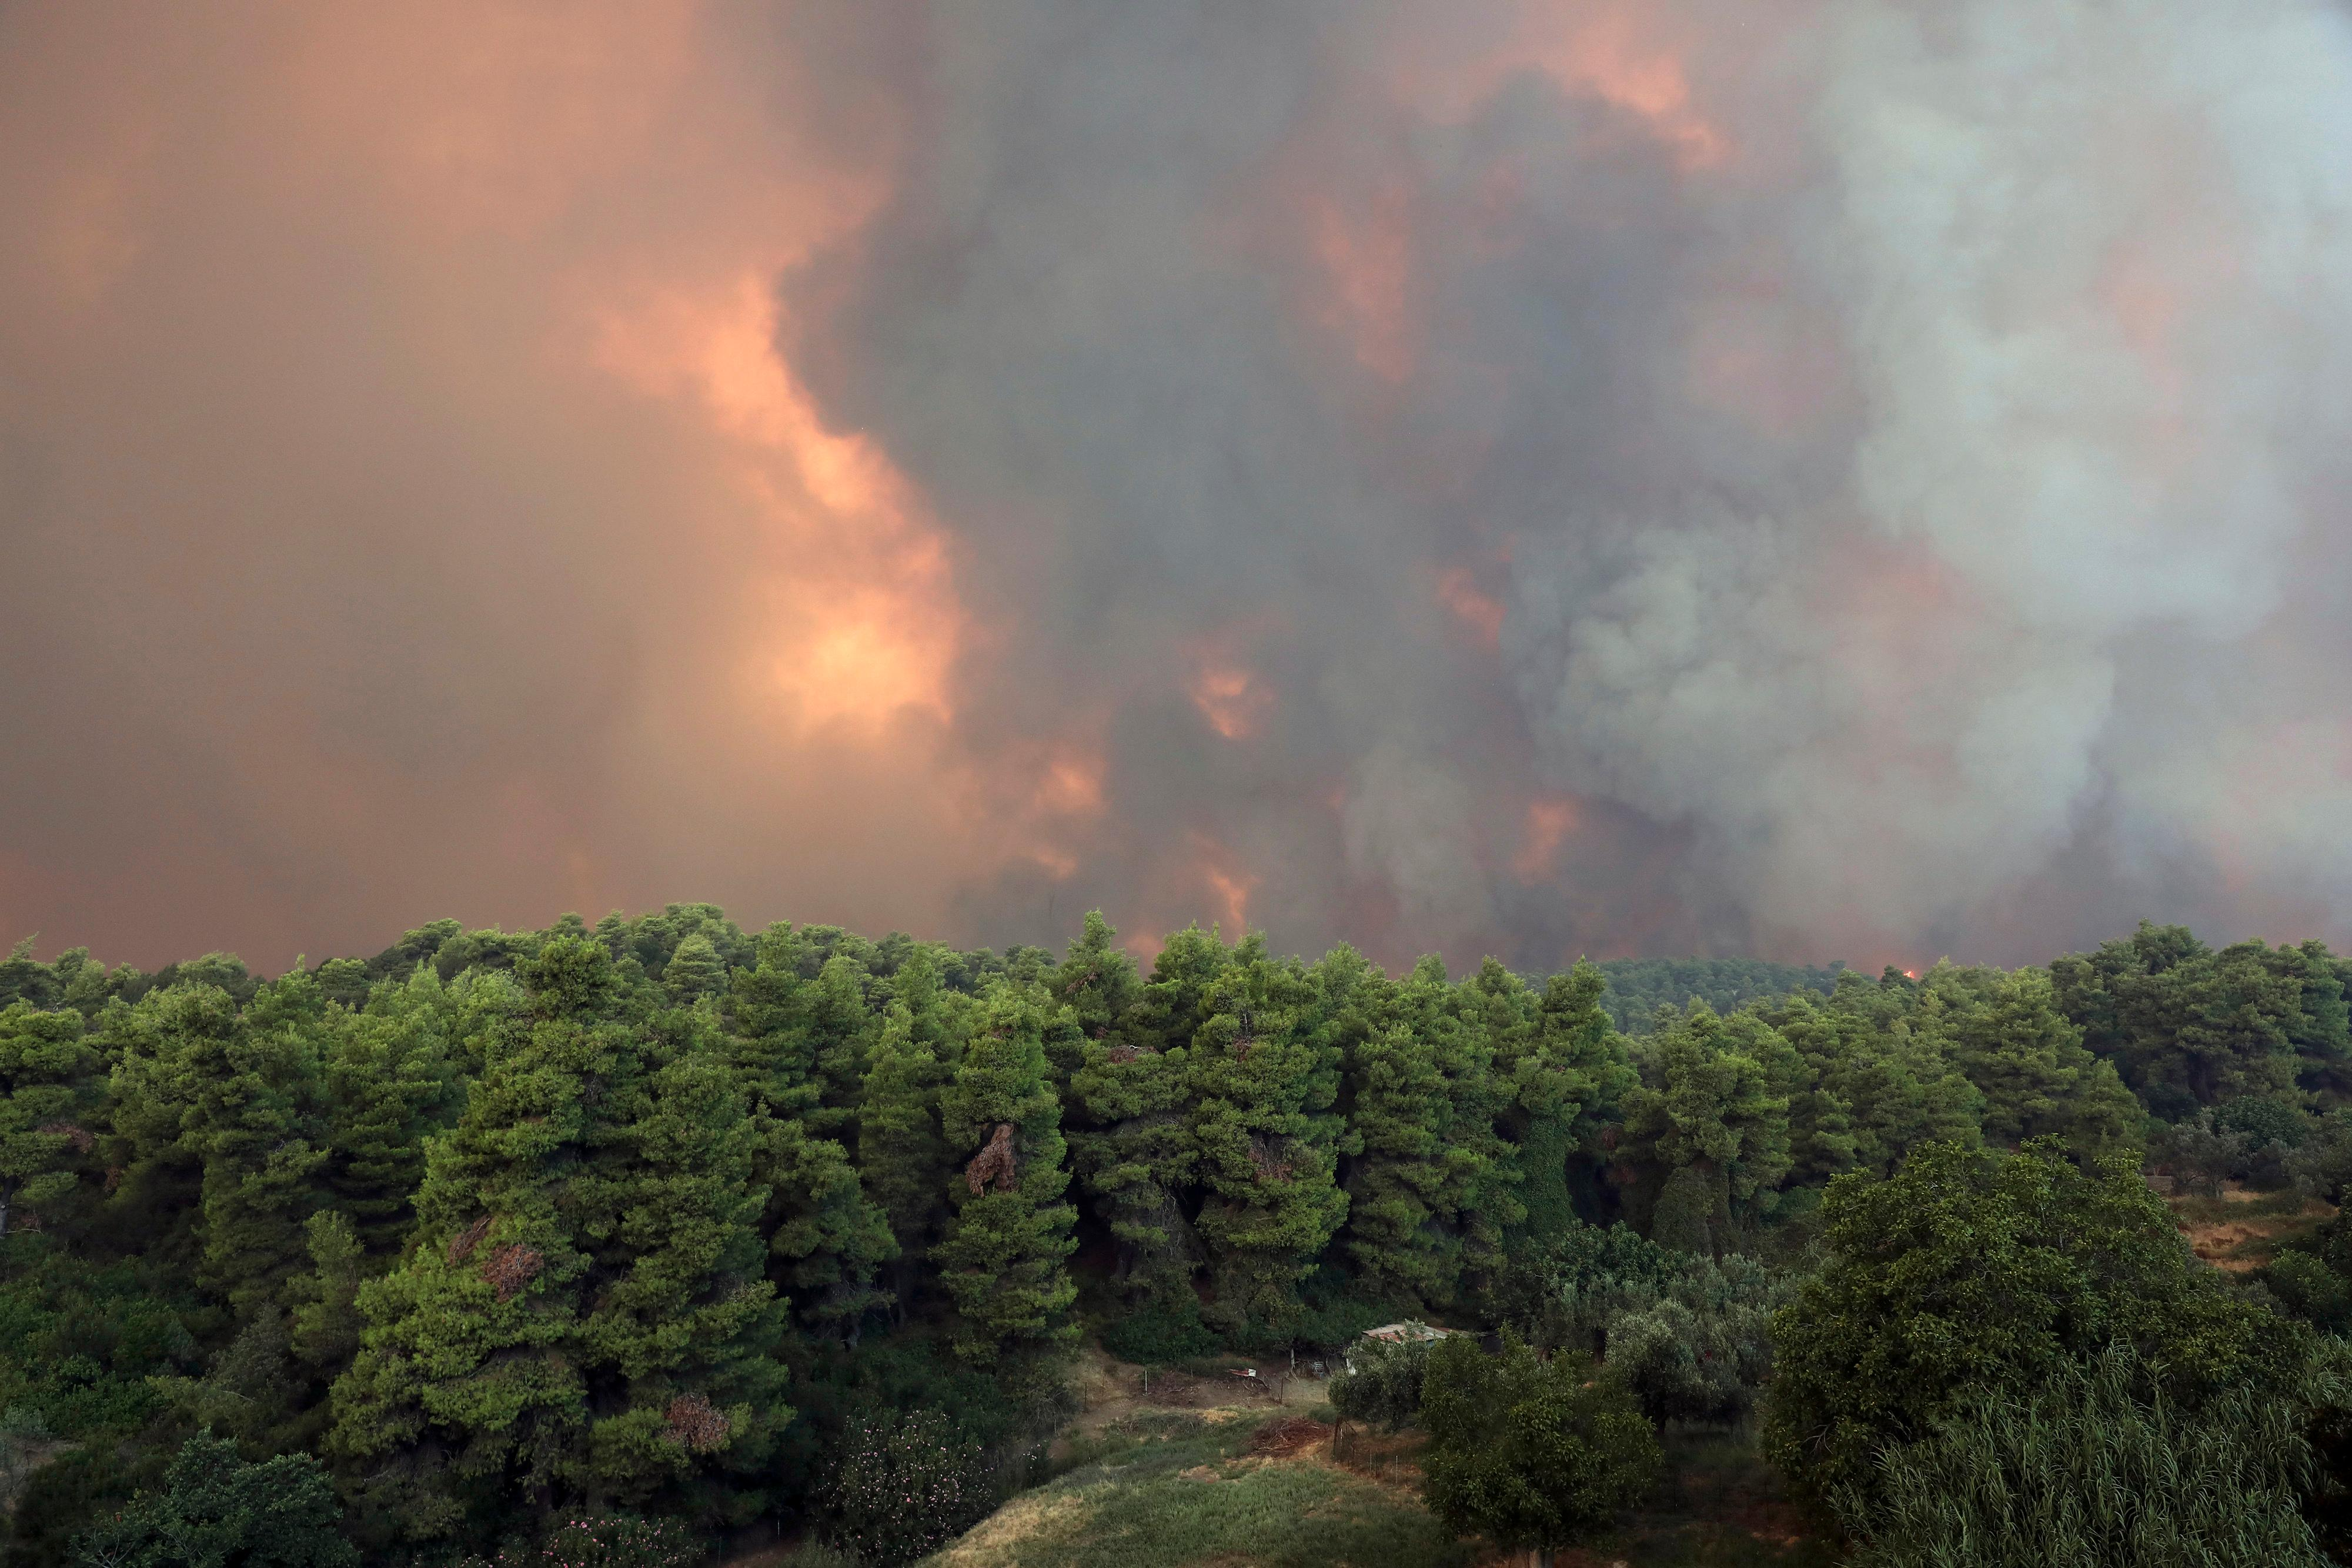 A huge cloud of smoke rise from a forest fire at Psachna village on the island of Evia, northeast of Athens, Tuesday, Aug. 13, 2019. (AP Photo/Yorgos Karahalis)